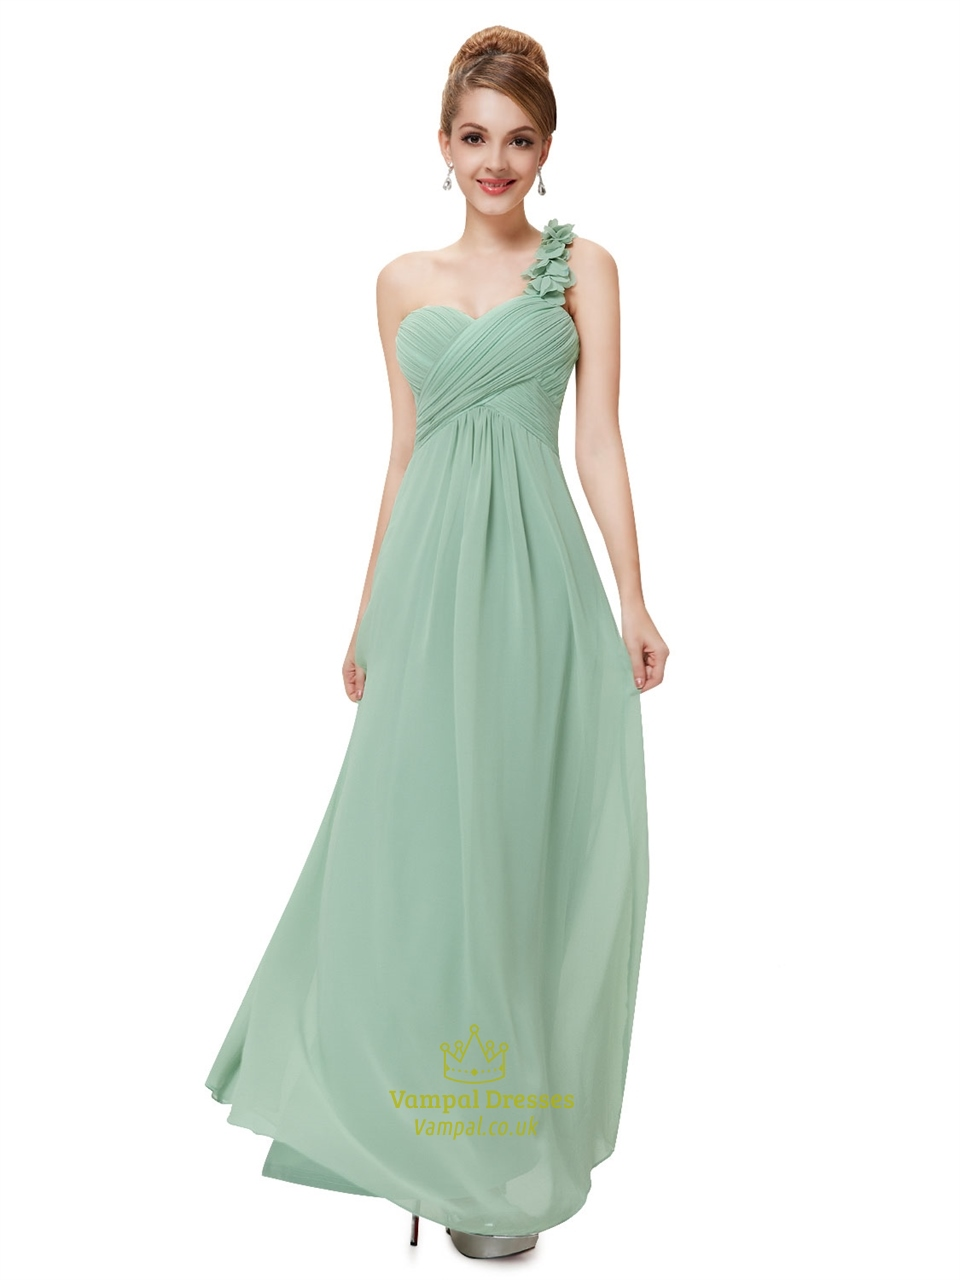 Sage green one shoulder chiffon bridesmaid dresses ukone shoulder color ombrellifo Gallery